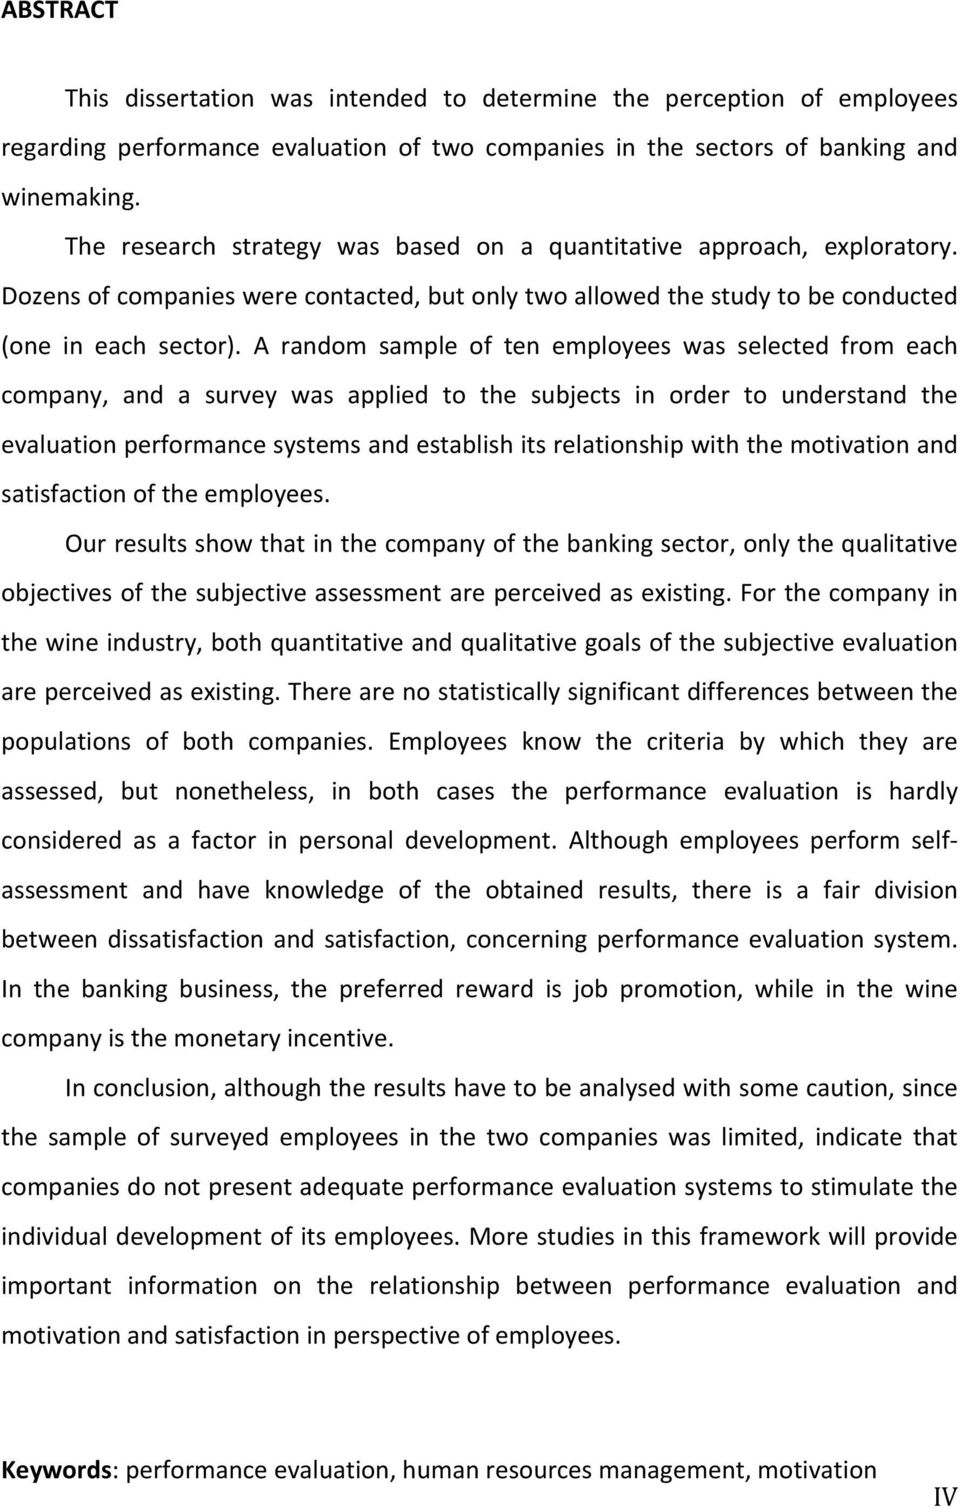 A random sample of ten employees was selected from each company, and a survey was applied to the subjects in order to understand the evaluation performance systems and establish its relationship with